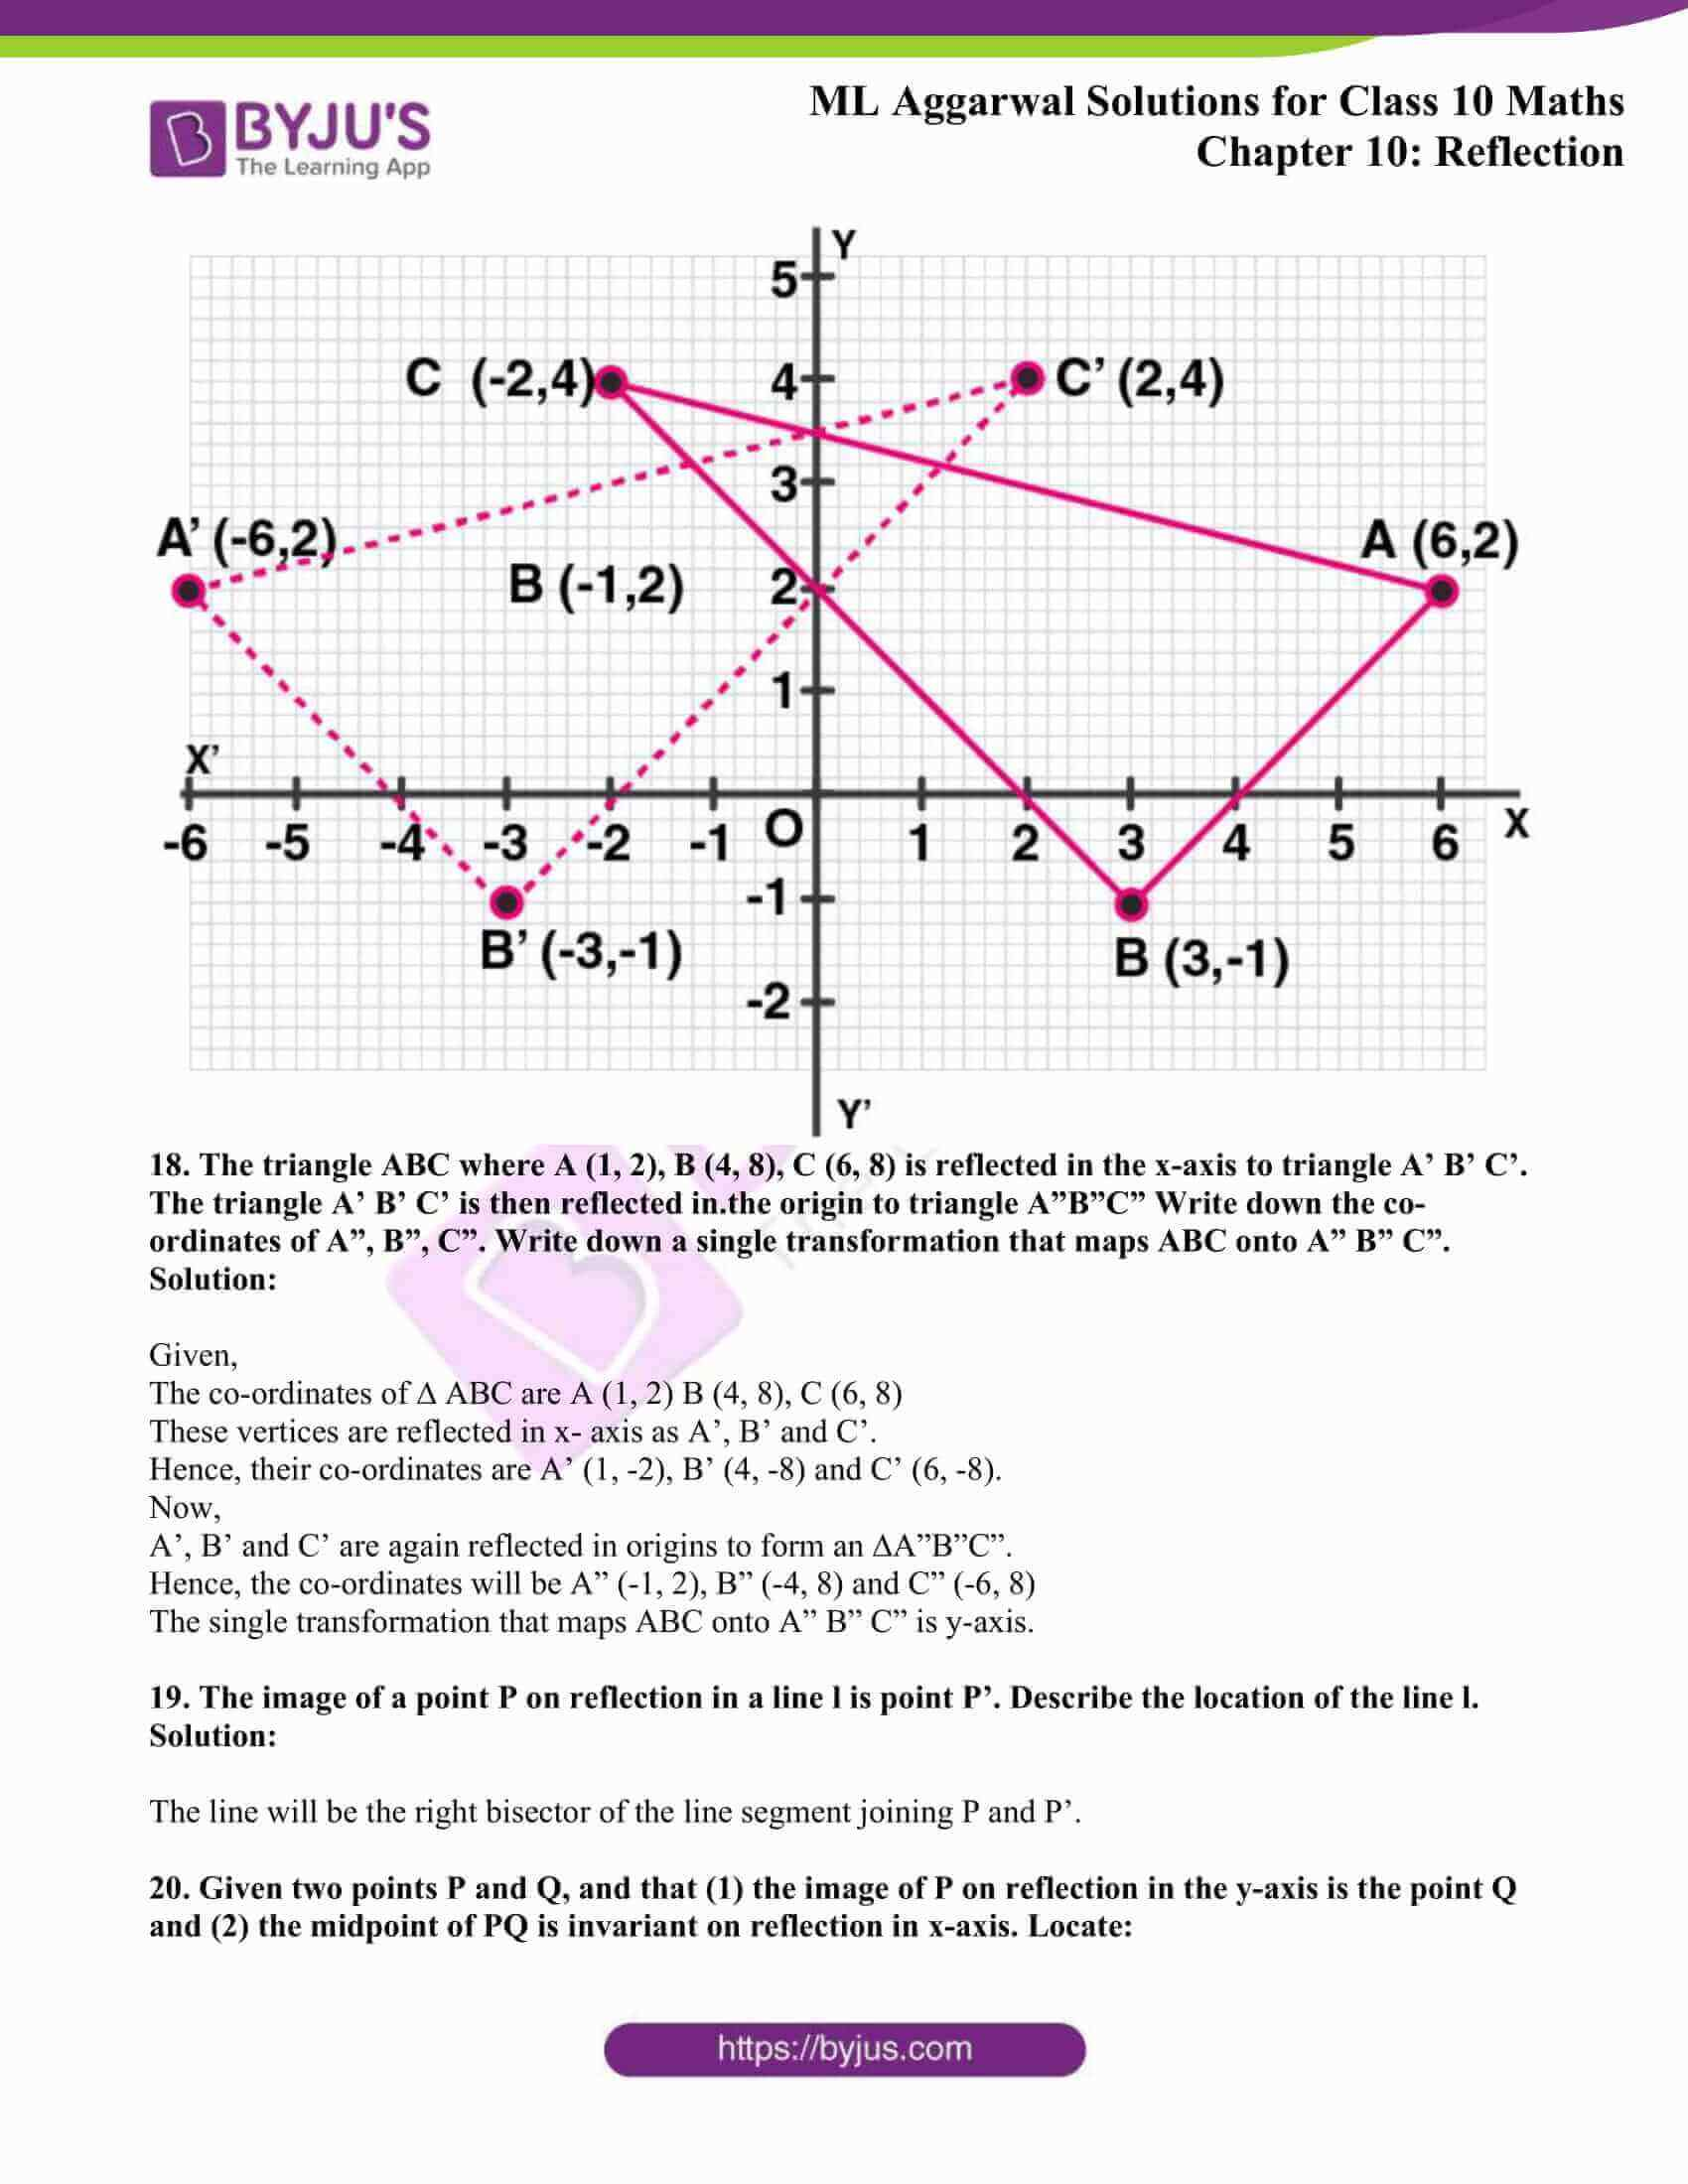 ml aggarwal solutions class 10 maths chapter 10 11